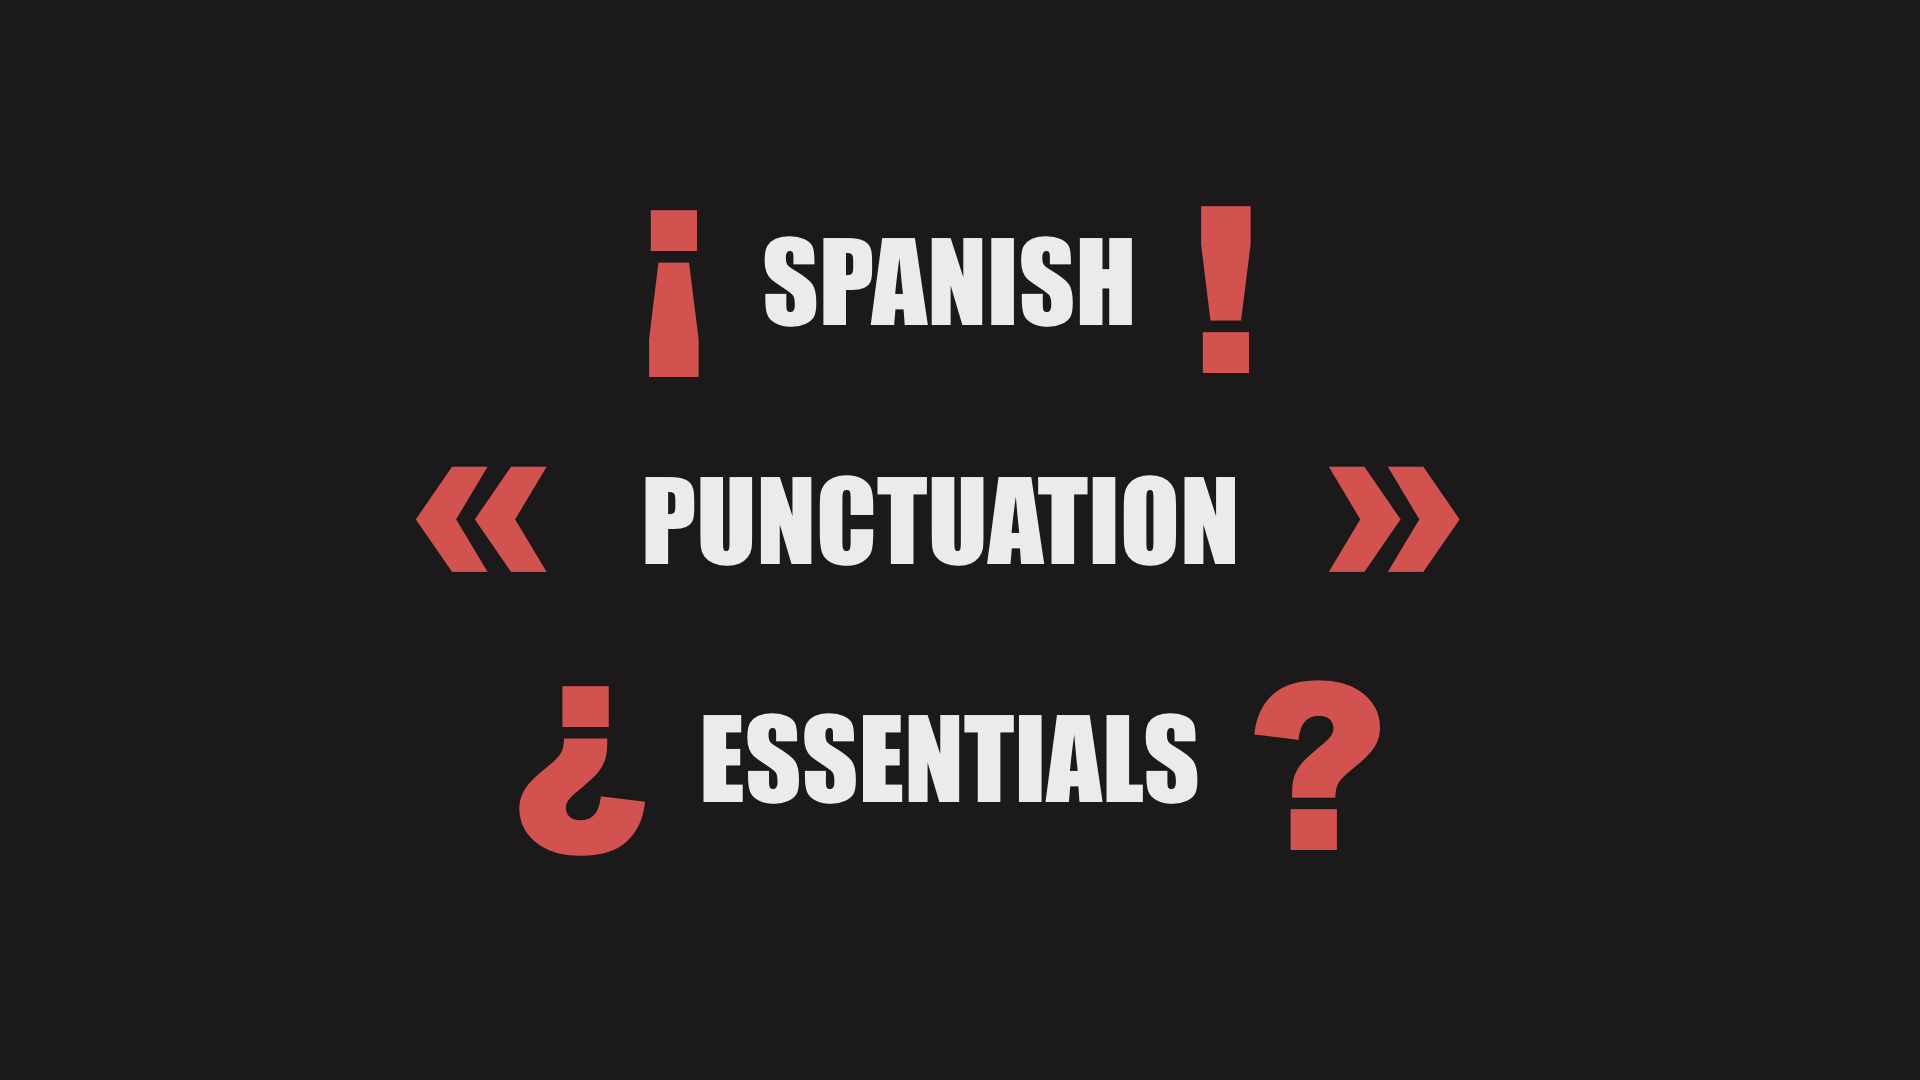 Spanish Punctuation Essentials Question Marks